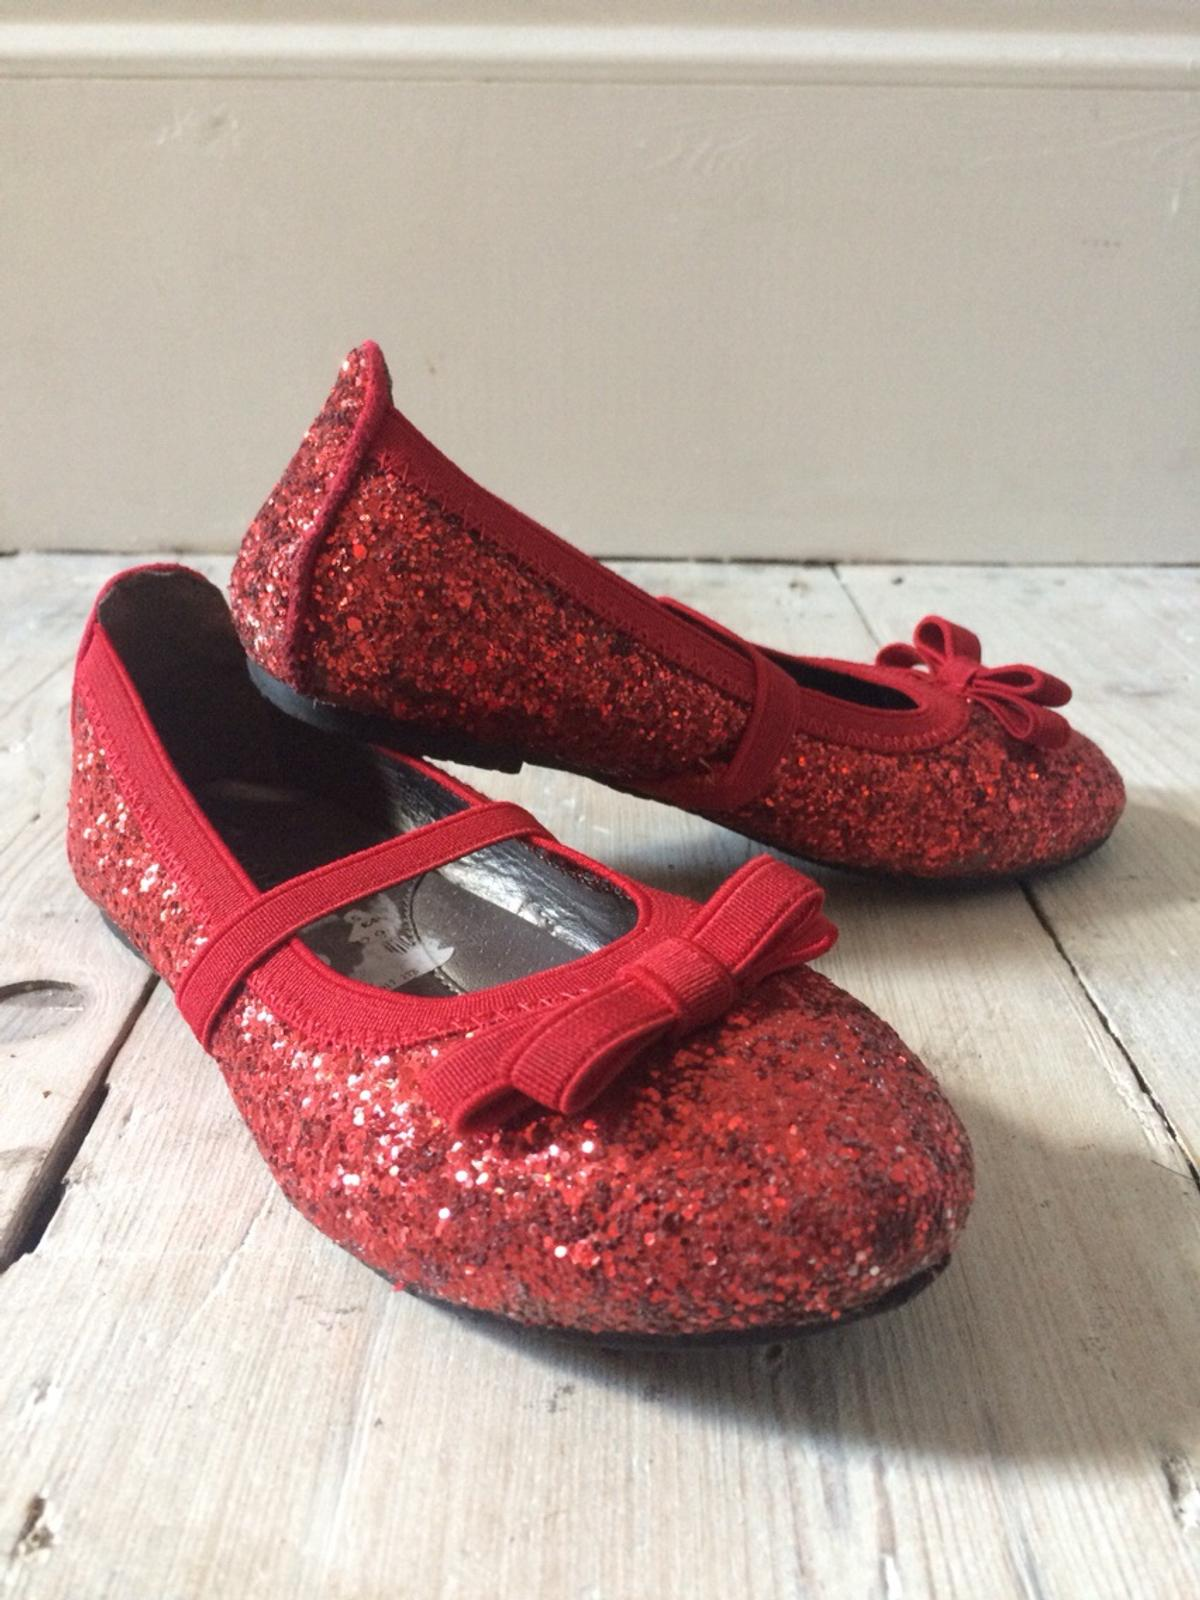 885106a2f2b8 Girls red sparkly shoes    UK 10.5-11 kids in SE18 London for £2.00 ...